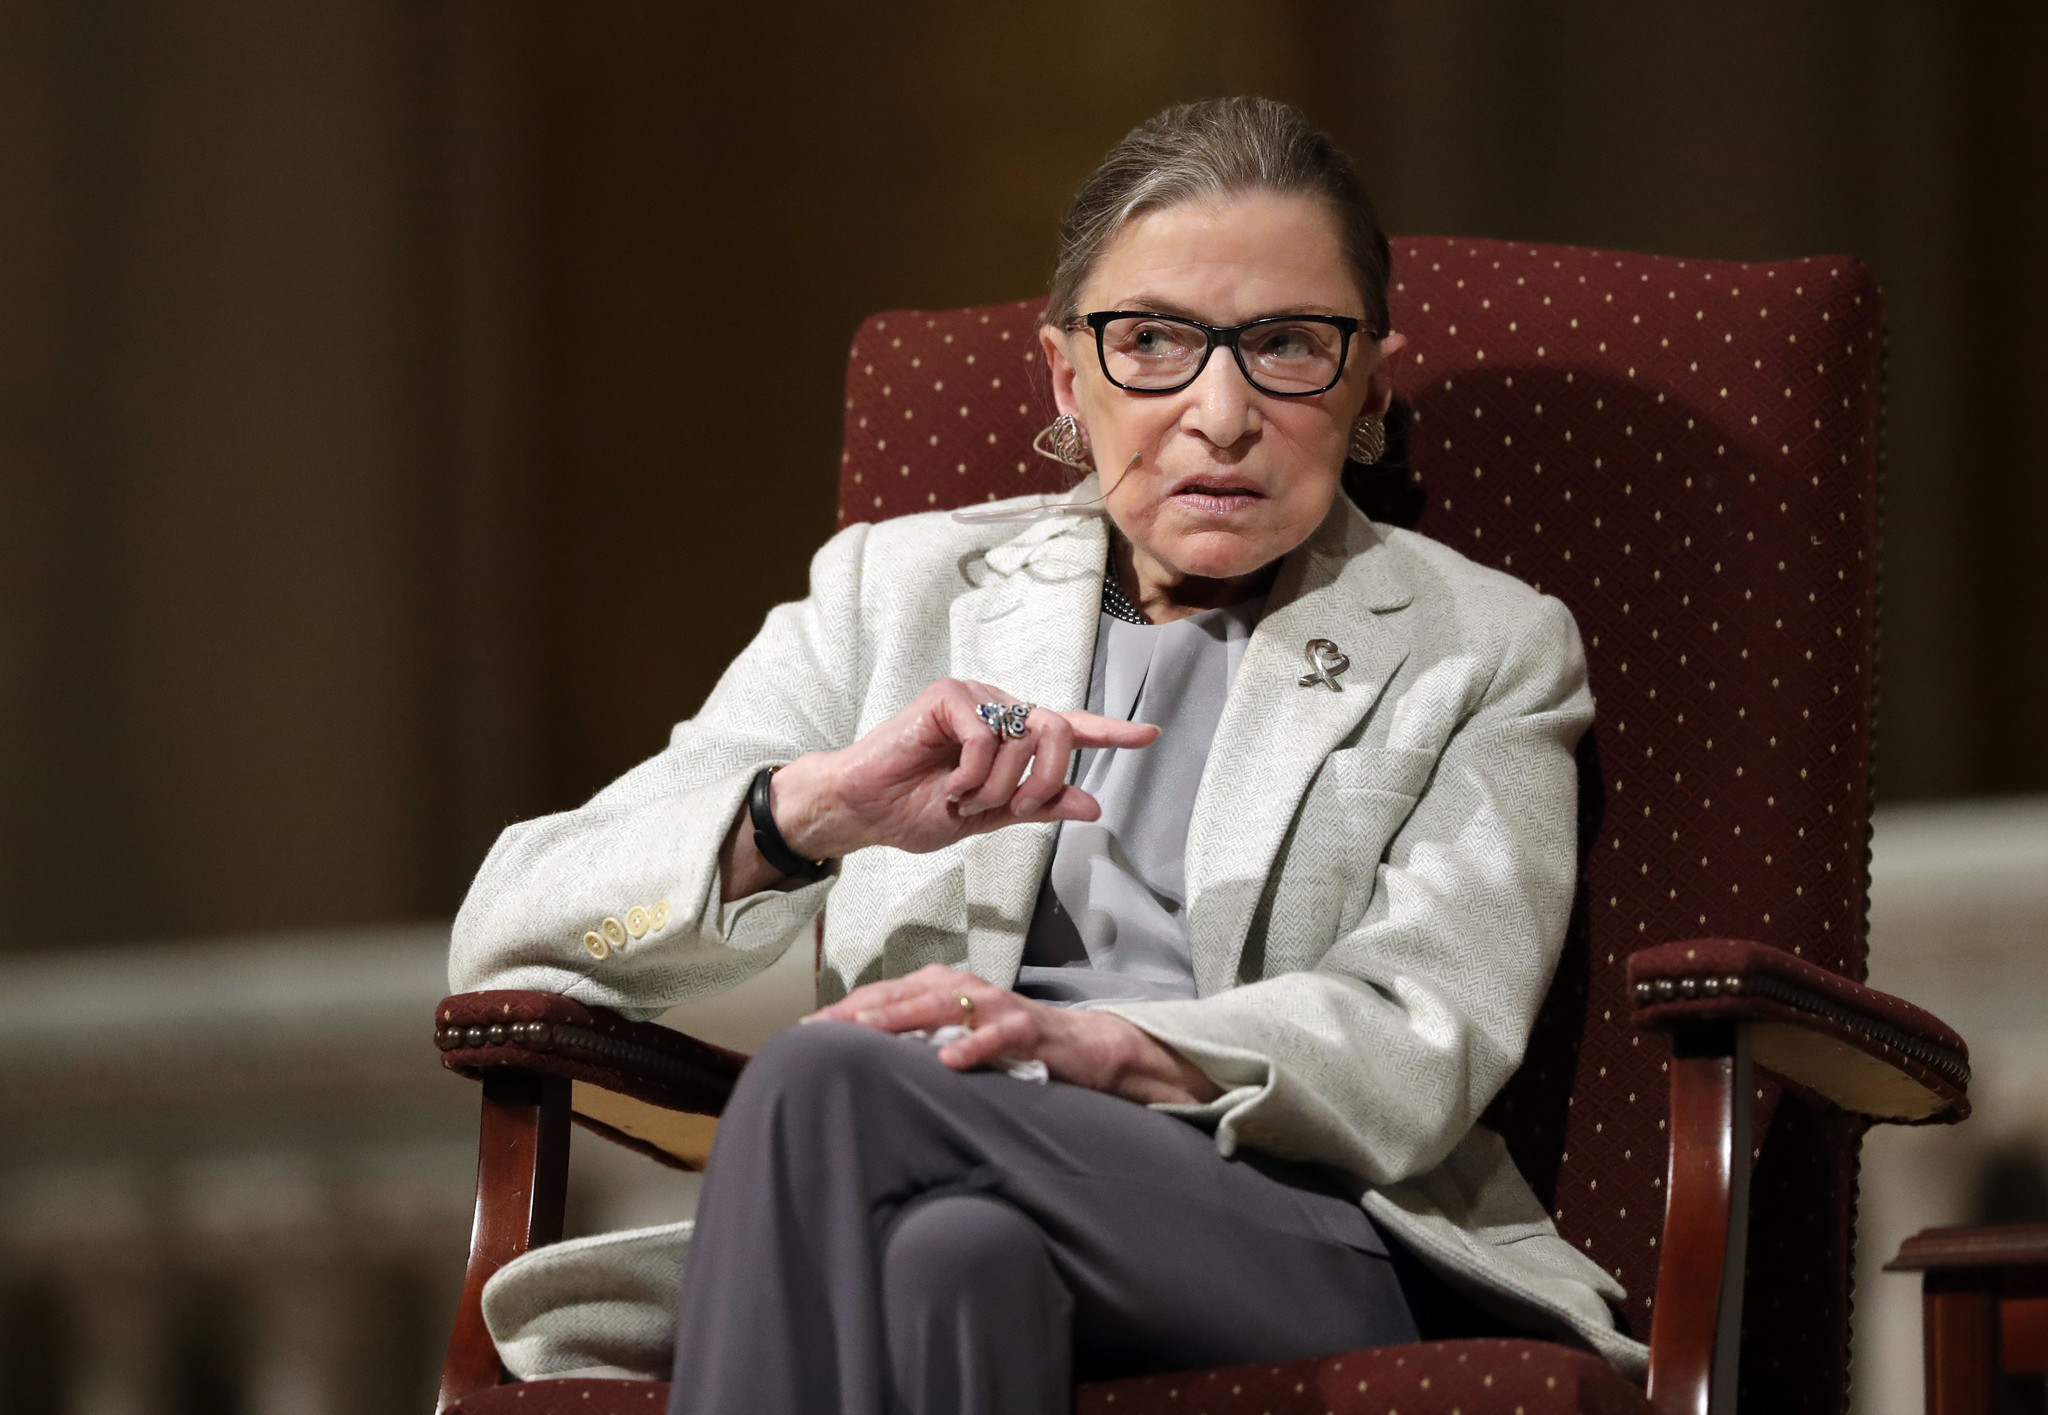 ruth bader ginsburg - photo #13